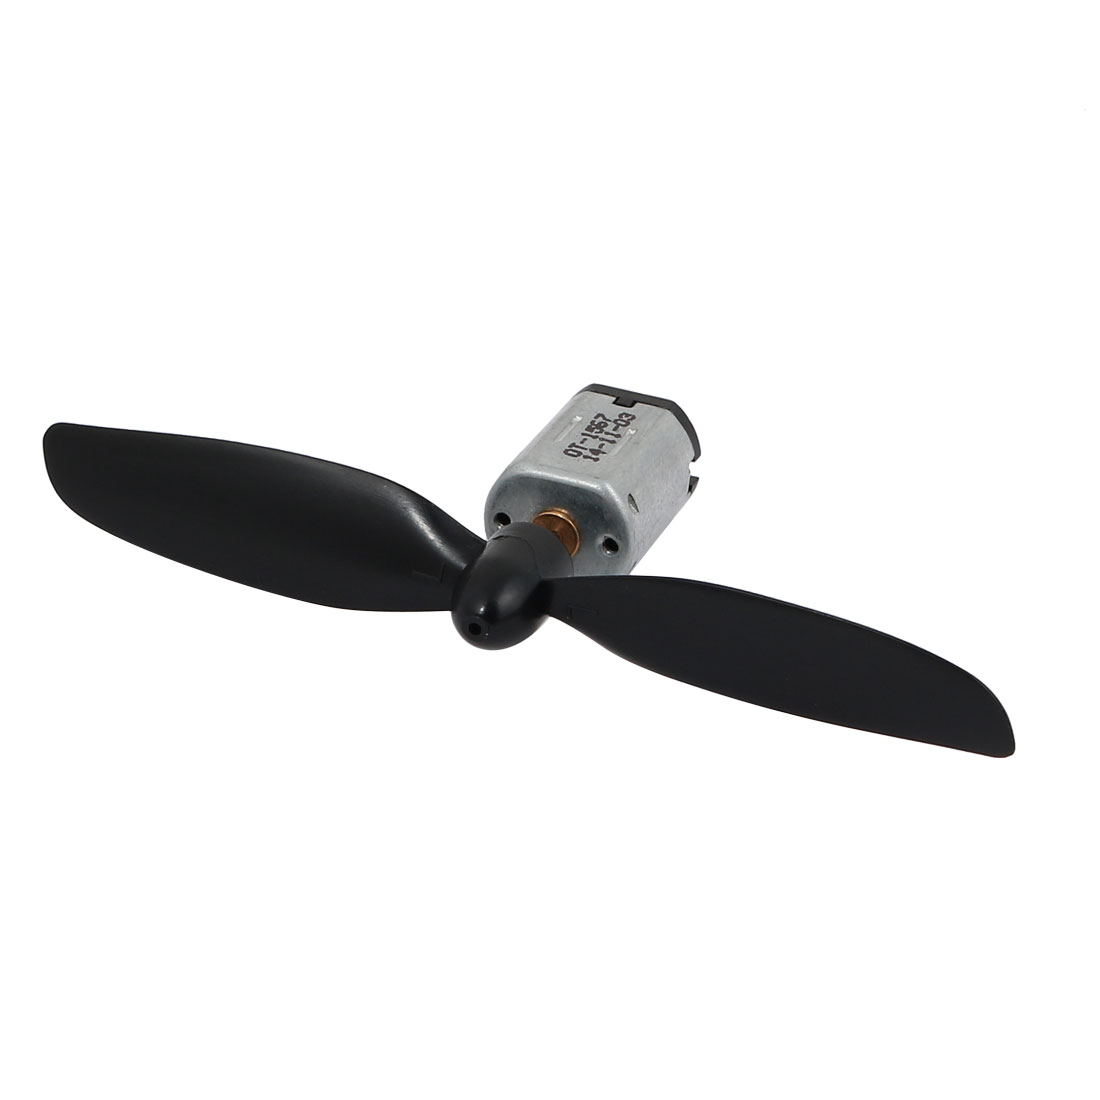 DC 3.4V 24000RPM N20 High Speed Strong Magnetic Motor w Helicopter CCW Propeller